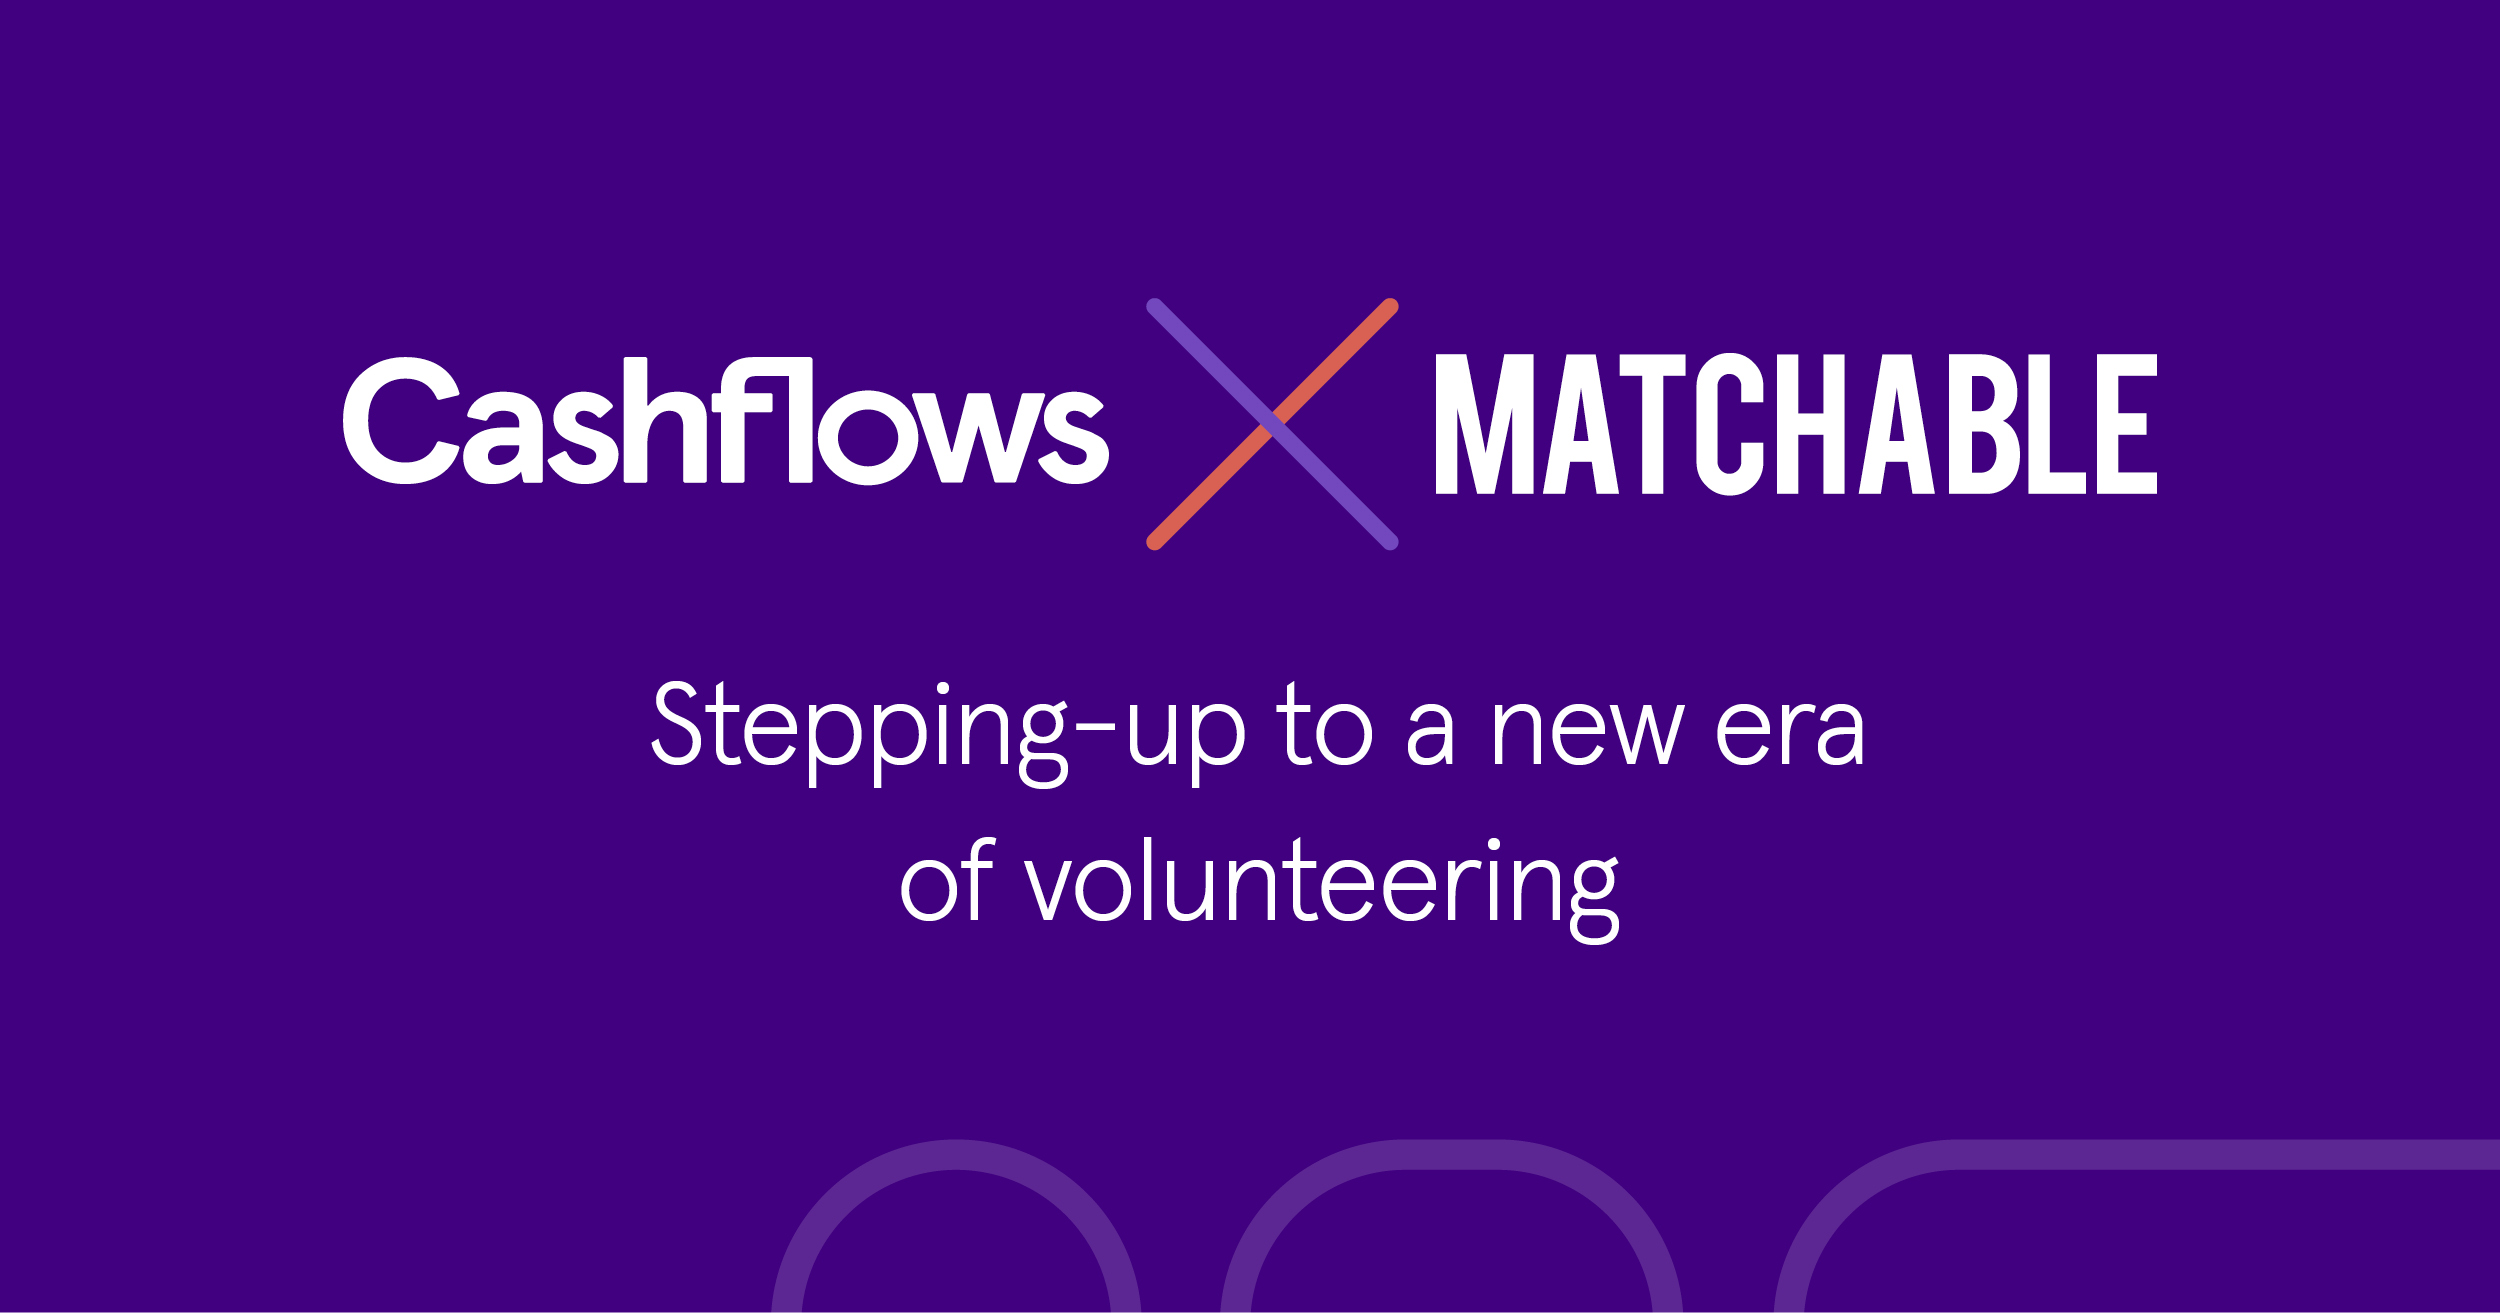 Cashflows partners with Matchable: Challenging ourselves to make a difference.